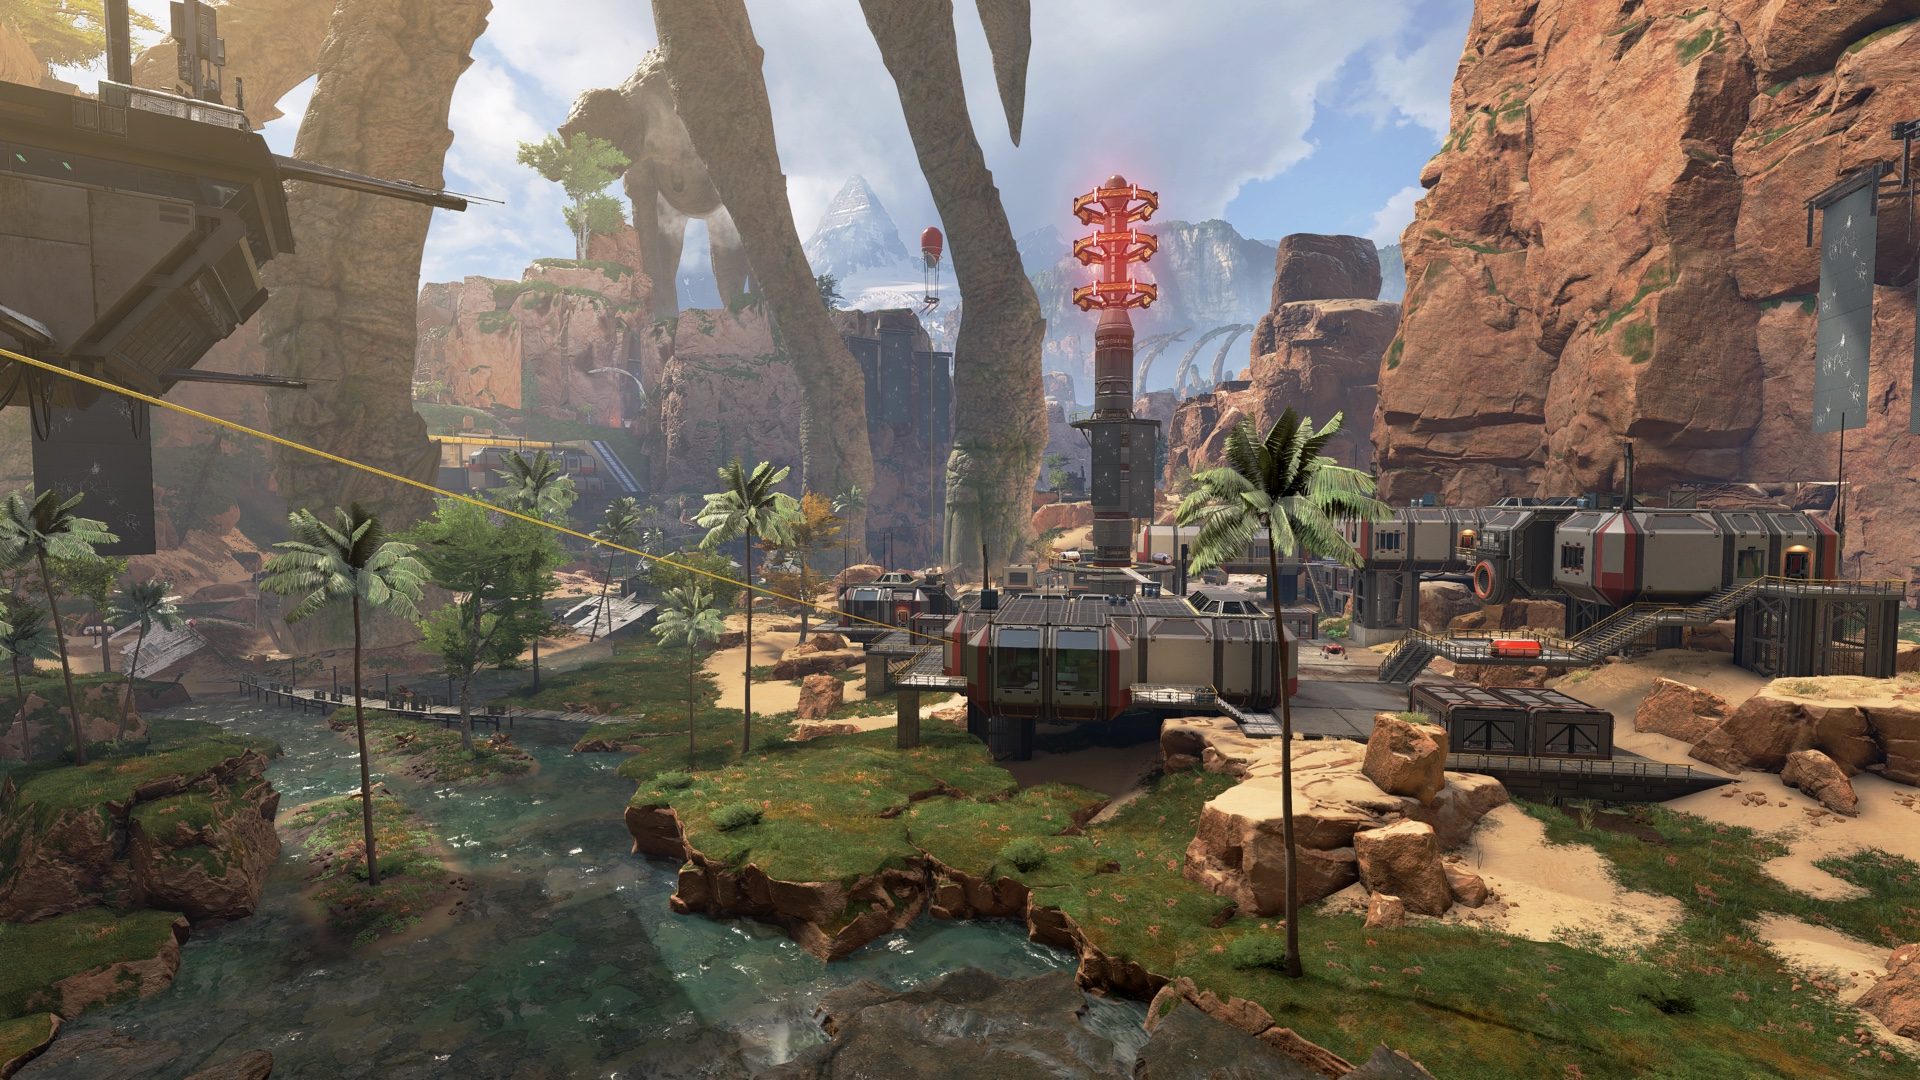 Apex Legends Shipping Container Town After